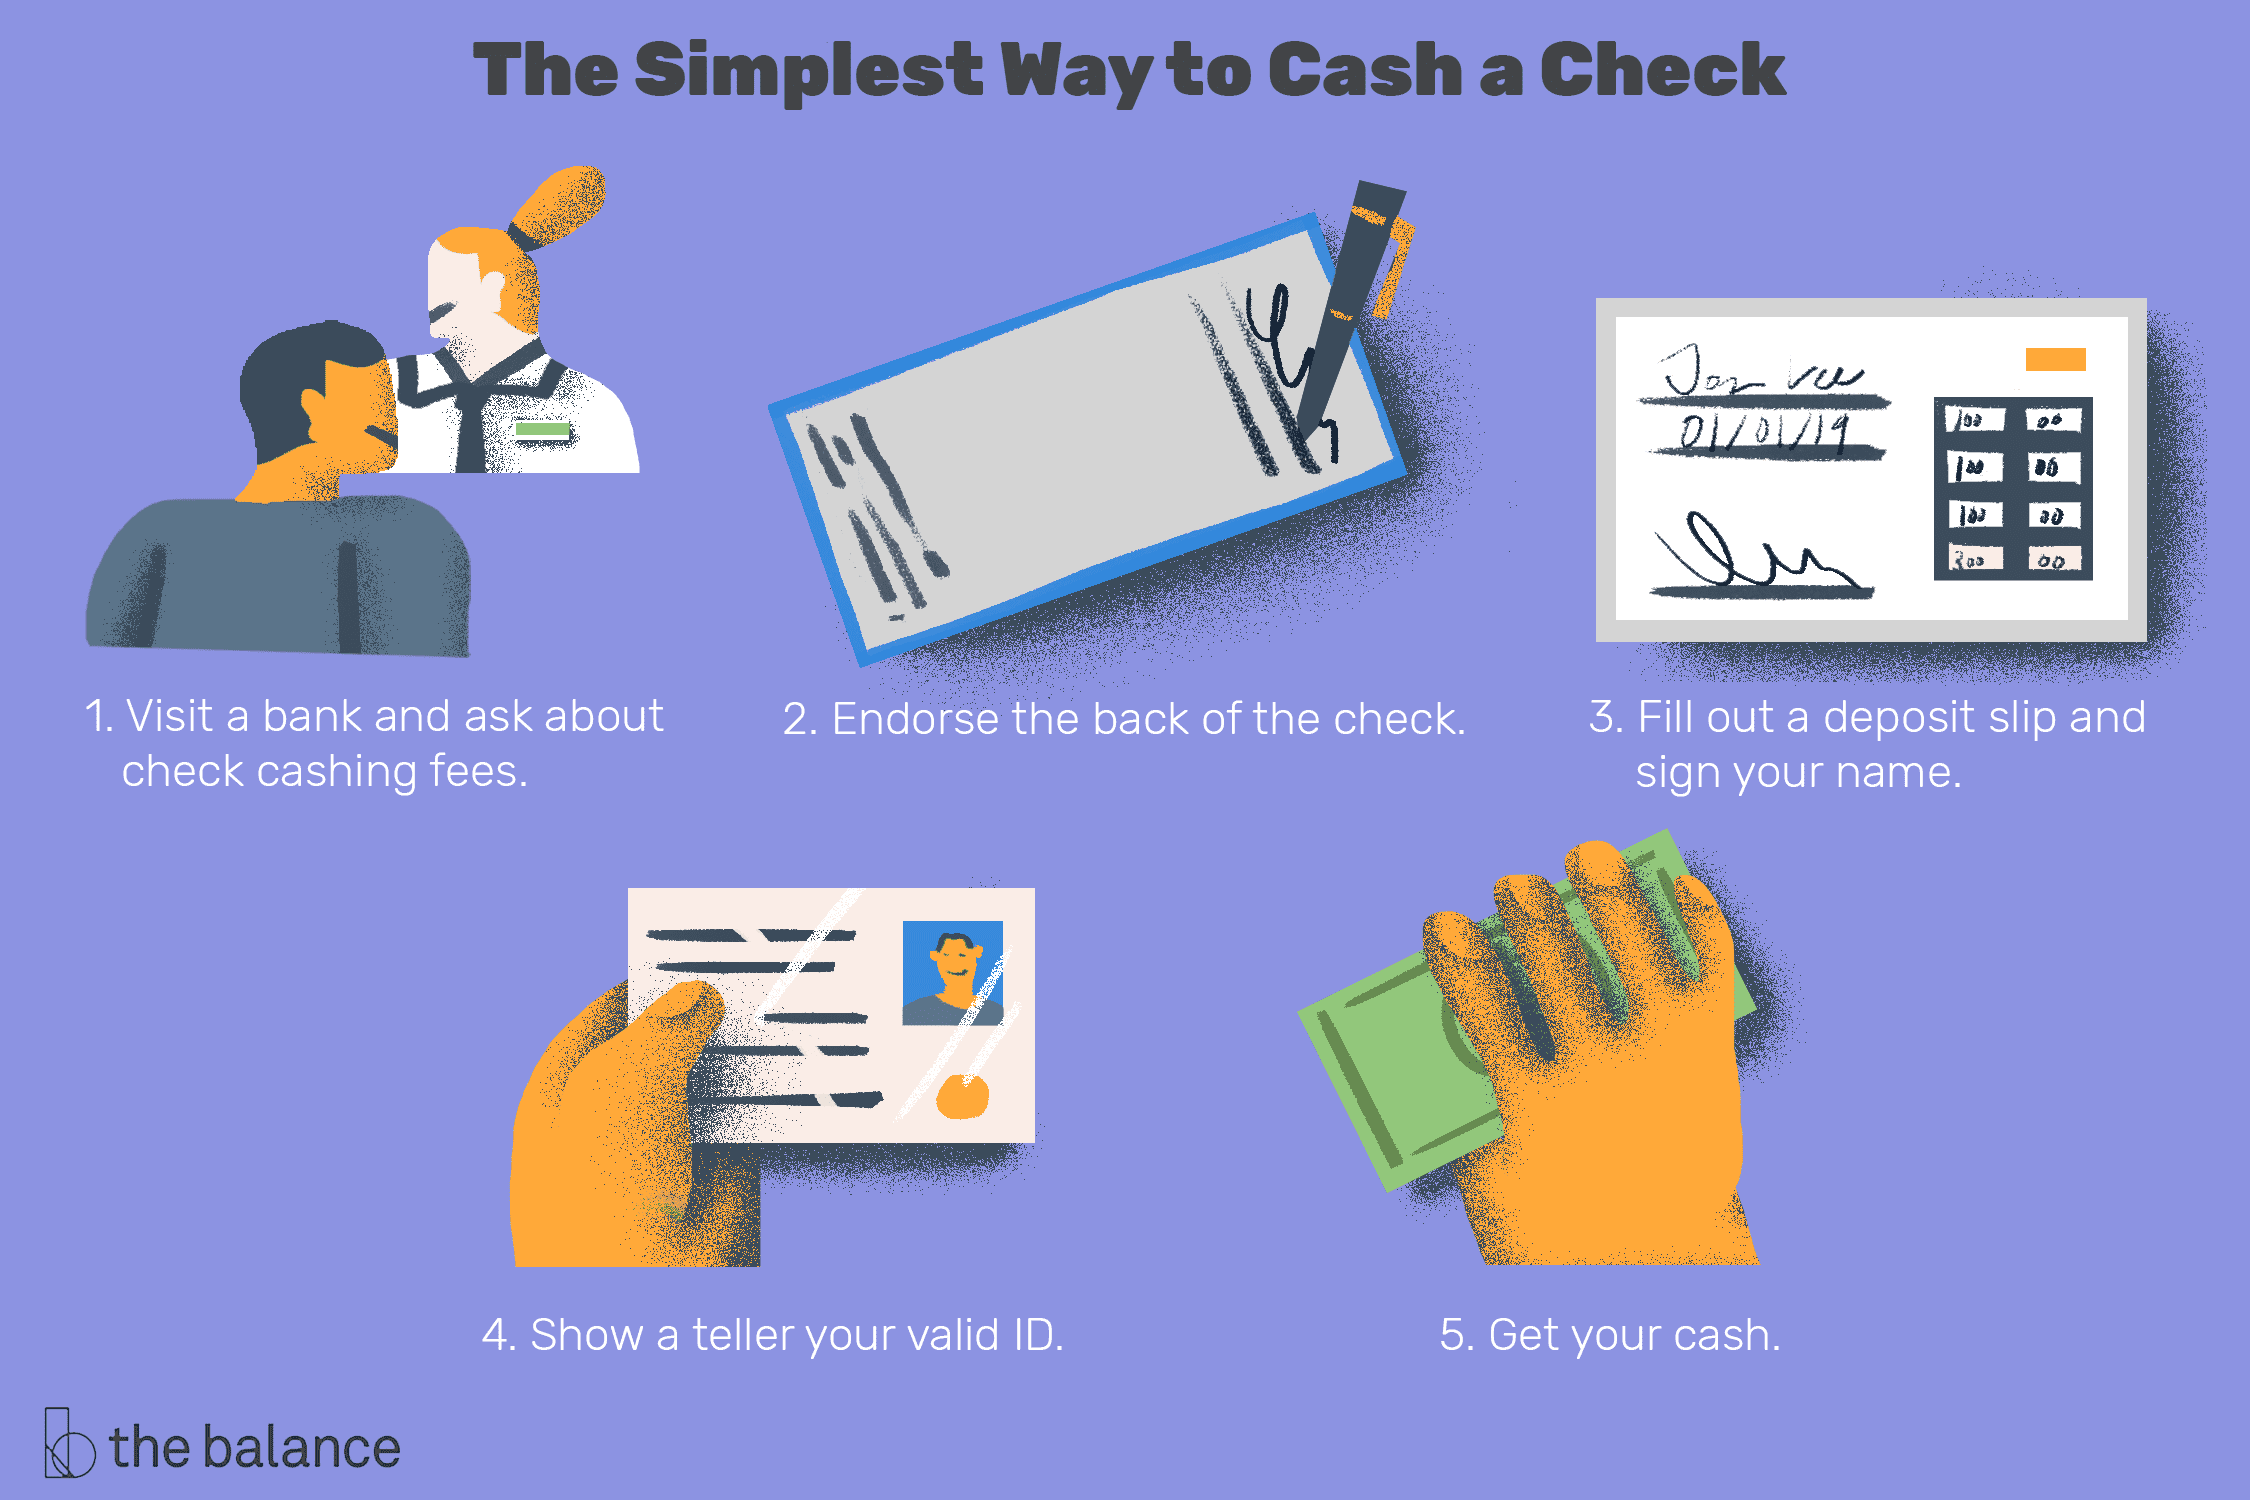 How to Cash a Check: Save Money and Avoid Problems